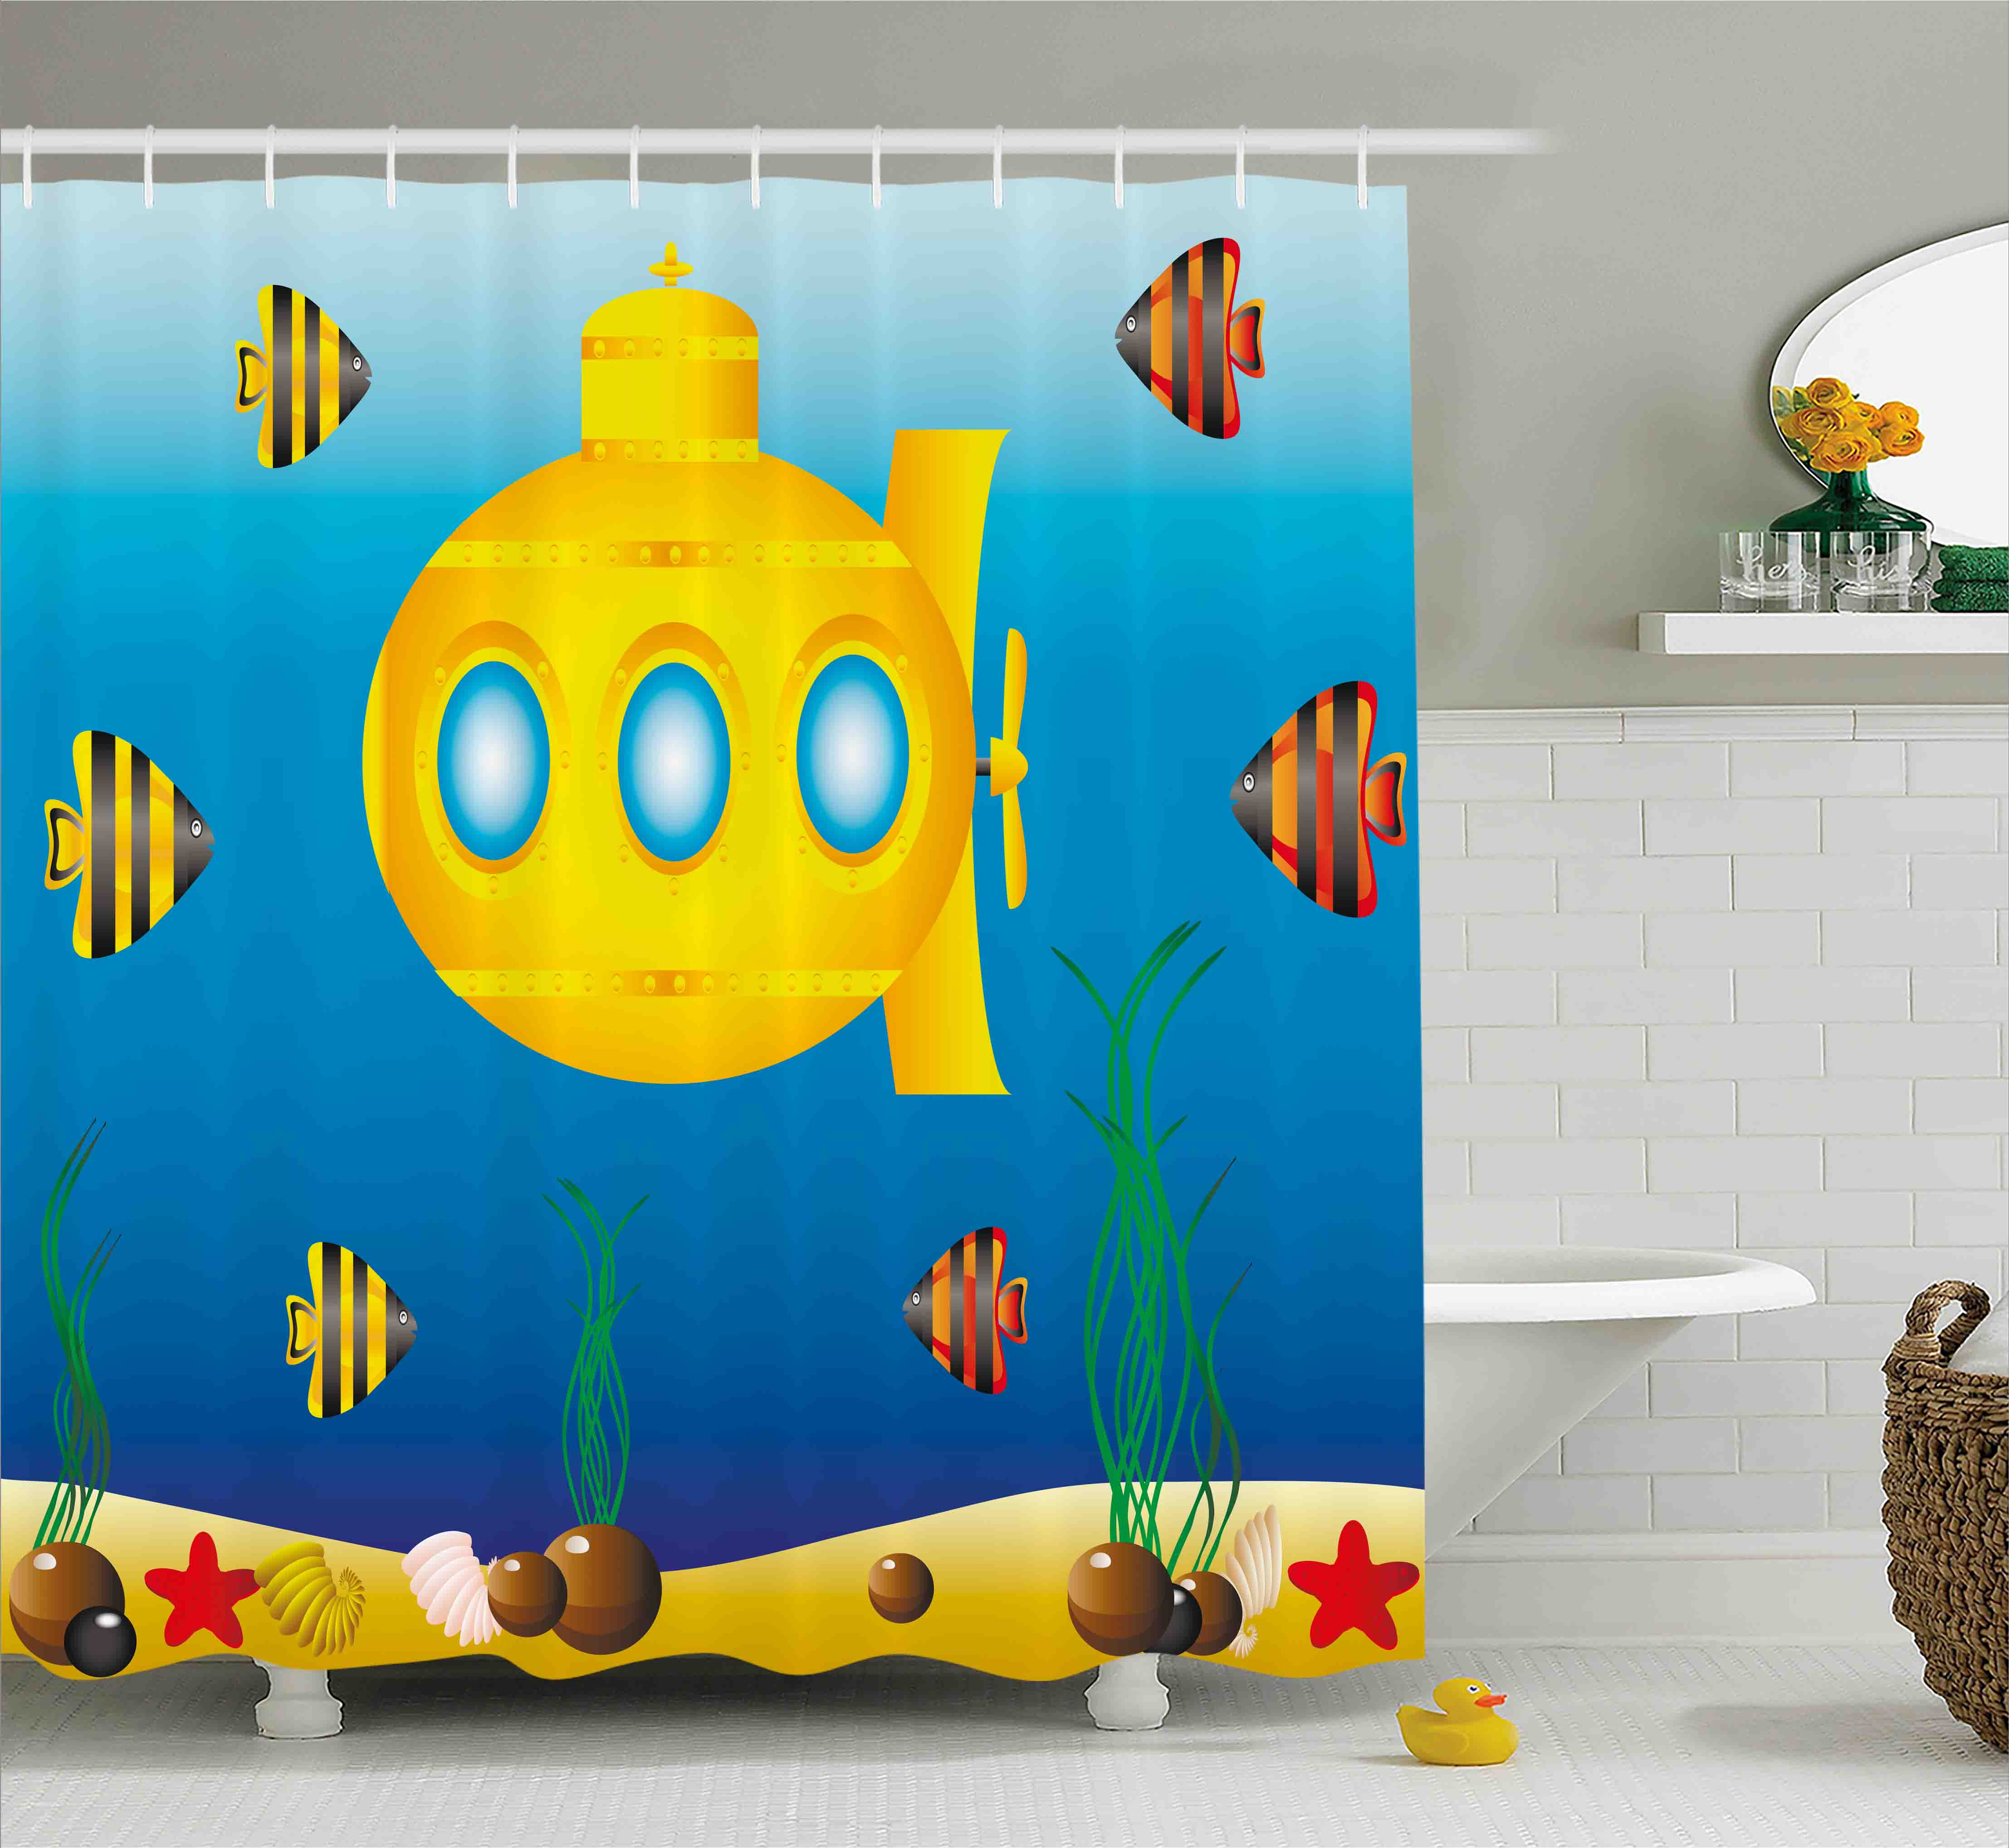 Yellow Submarine Decor Shower Curtain, Nautical Theme a Submarine Surrounded by Fish and Sea Grass Print, Fabric Bathroom Set with Hooks, 69W X 84L Inches Extra Long, Blue Yellow, by Ambesonne